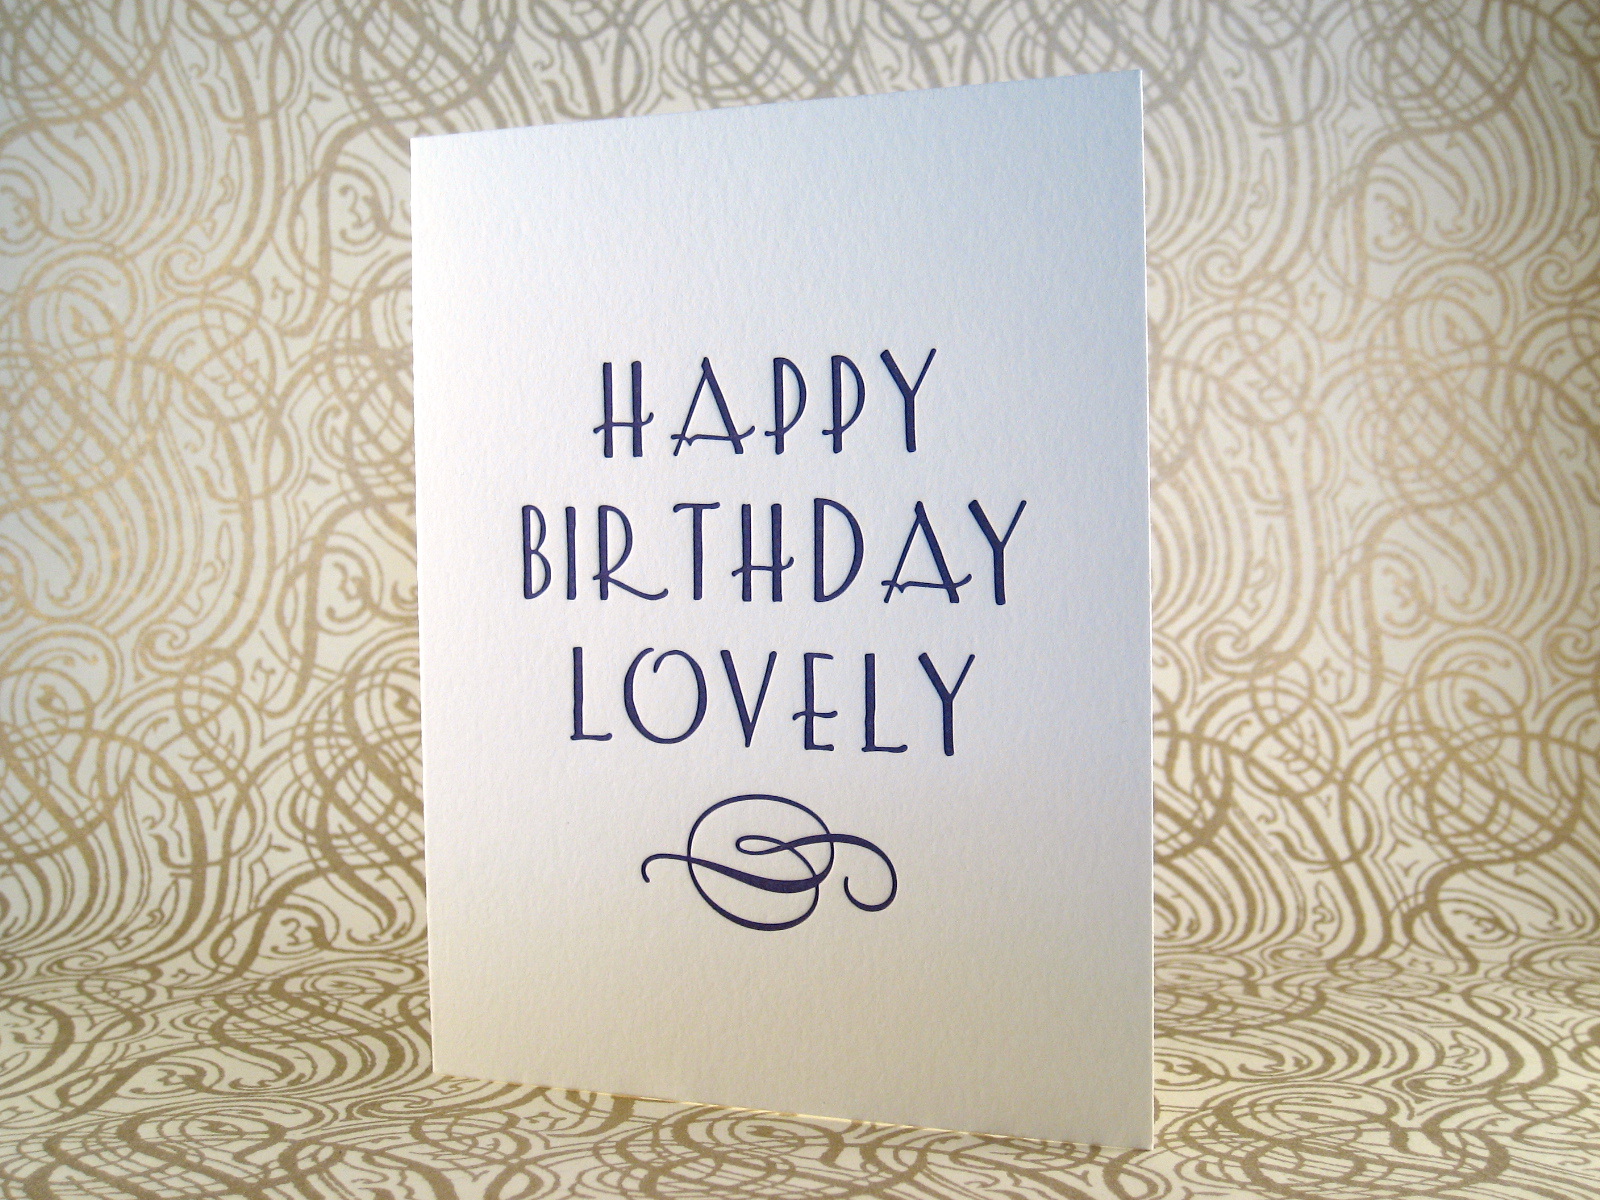 letterpress birthday austin inviting lovely card